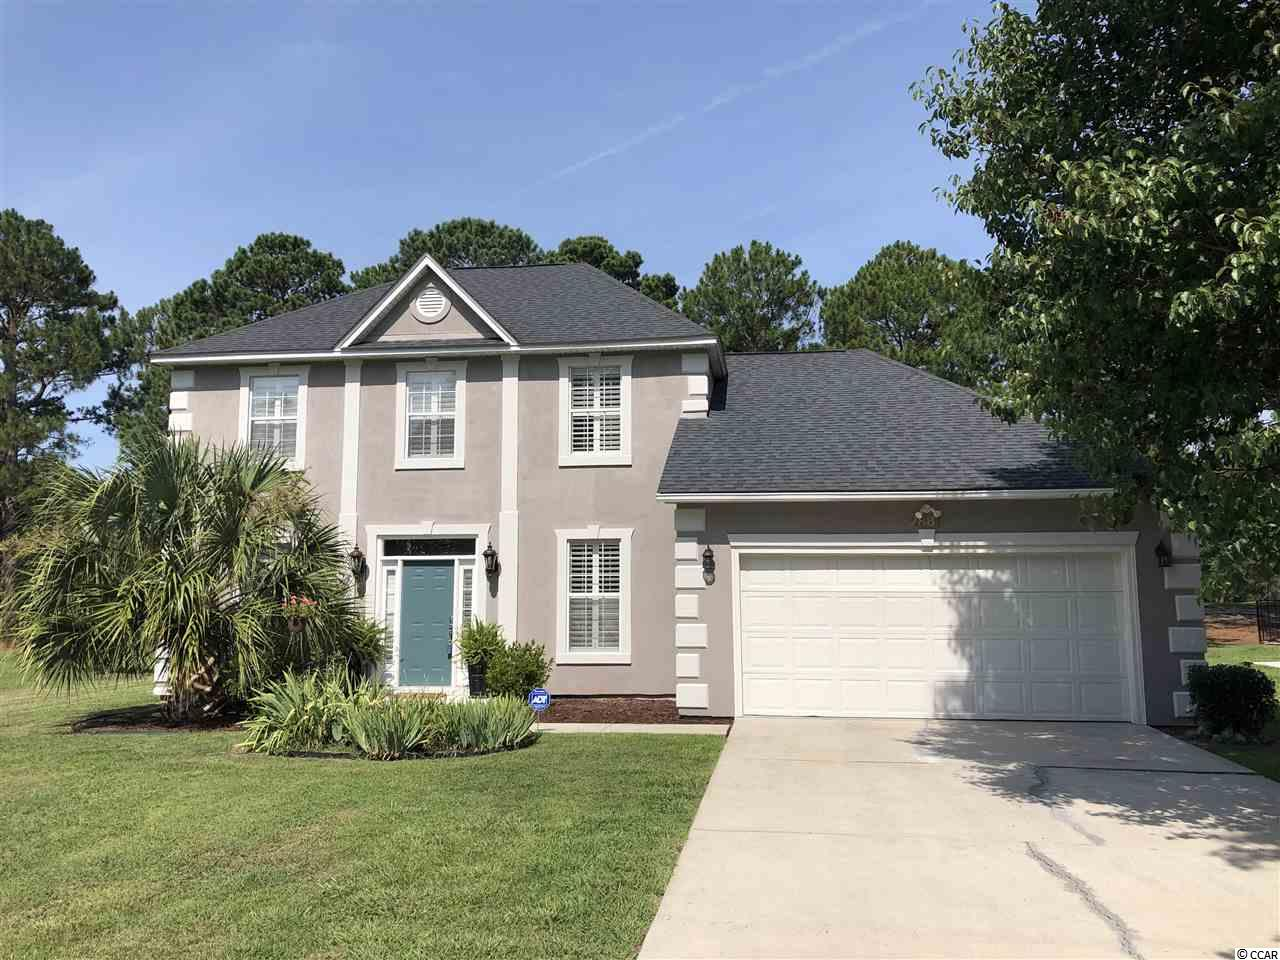 ON THE 8TH HOLE OF MYRTLEWOOD GOLF COURSE, THERE IS THIS GORGEOUS HOME WITH EXTENSIVE RENOVATIONS SITTING ON THE LARGEST GOLF COURSE HOME SITE IN THE NEIGHBORHOOD!  RENOVATIONS INCLUDE GRANITE COUNTERTOPS, STAINLESS STEEL APPLIANCES, TILE FLOORS AND BACKSPLASH, BUILTINS AND PLANTATION SHUTTERS THROUGHOUT!  NEW HVAC, HOT WATER SYSTEM, AND ROOF IN THE PAST 5 YEARS!  FIRST FLOOR MASTER EN SUITE THAT FIT FOR A QUEEN OR KING!  FRESHLY PAINTED INSIDE AND OUT! TONS OF STORAGE FROM THE WALK IN ATTIC THAT COULD EASILY BE CONVERTED TO ANOTHER LARGE BEDROOM AND TONS SHELVING IN THE 2 CAR GARAGE.  WORK BENCH IN THE GARAGE FOR ALL YOUR TOOLS. EASY ACCESS TO MYRTLEWOOD CHAMPIONSHIP GOLF COURSE WITH 36 HOLES AND DRIVING RANGE.  SHORT WALK OR DRIVE TO THE LARGEST ENTERTAINMENT VENUE IN SOUTH CAROLINA - BROADWAY AT THE BEACH WITH TONS OF SHOPPING, THEATRES, RESTAURANTS, MINI GOLF, NIGHTLIFE AND MANY ENTERTAINMENT OPTIONS FOR ALL AGES!  ONE MILE DRIVE TO THE BEAUTIFUL BEACHES OF THE GRAND STRAND!!  AWESOME VIEWS - HOME OVER LOOKS THE 8TH HOLE OF THE MYRTLEWOOD CHAMPIONSHIP GOLF COURSE! YOU MUST SEE THIS ONE BEFORE YOU BUY!  EASY TO SEE!!!